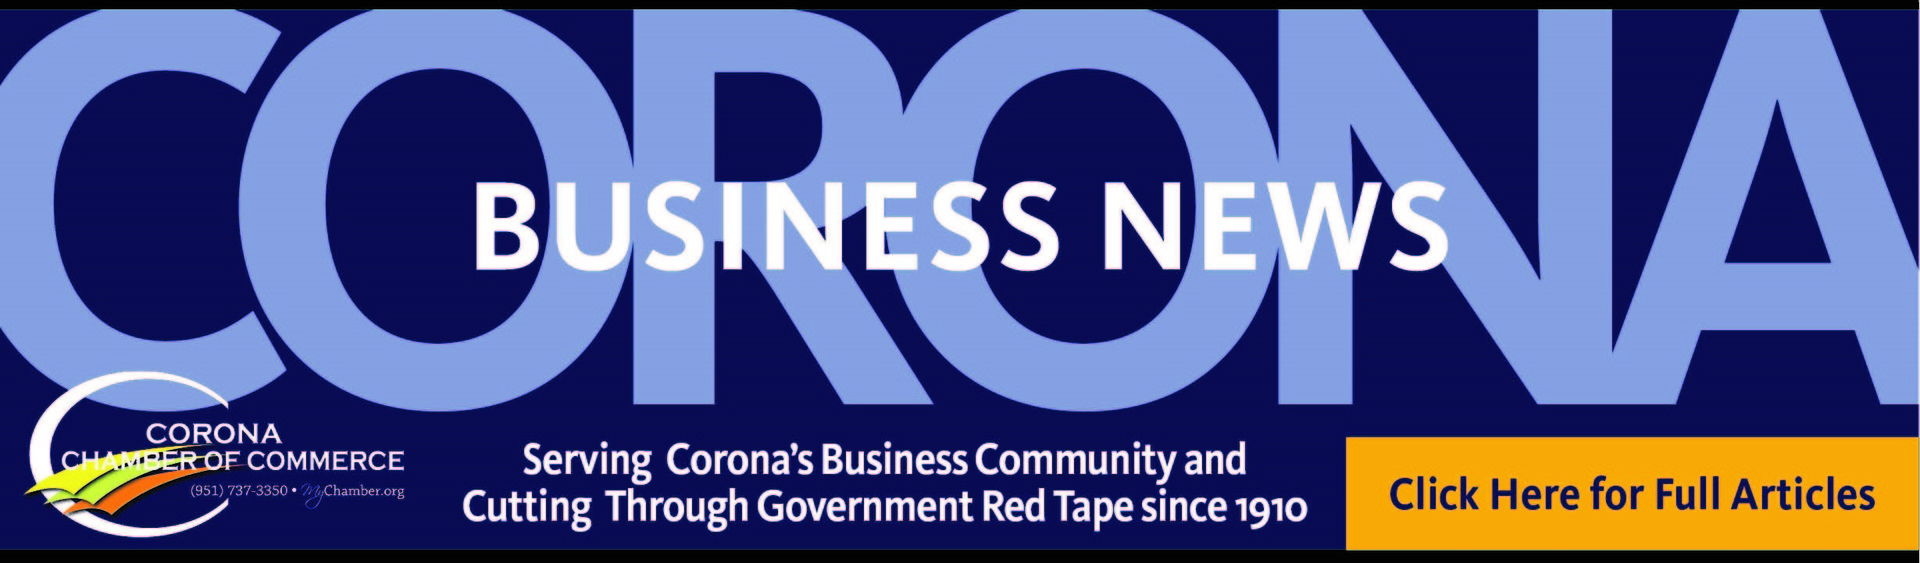 corona-business-news-w1920.jpg